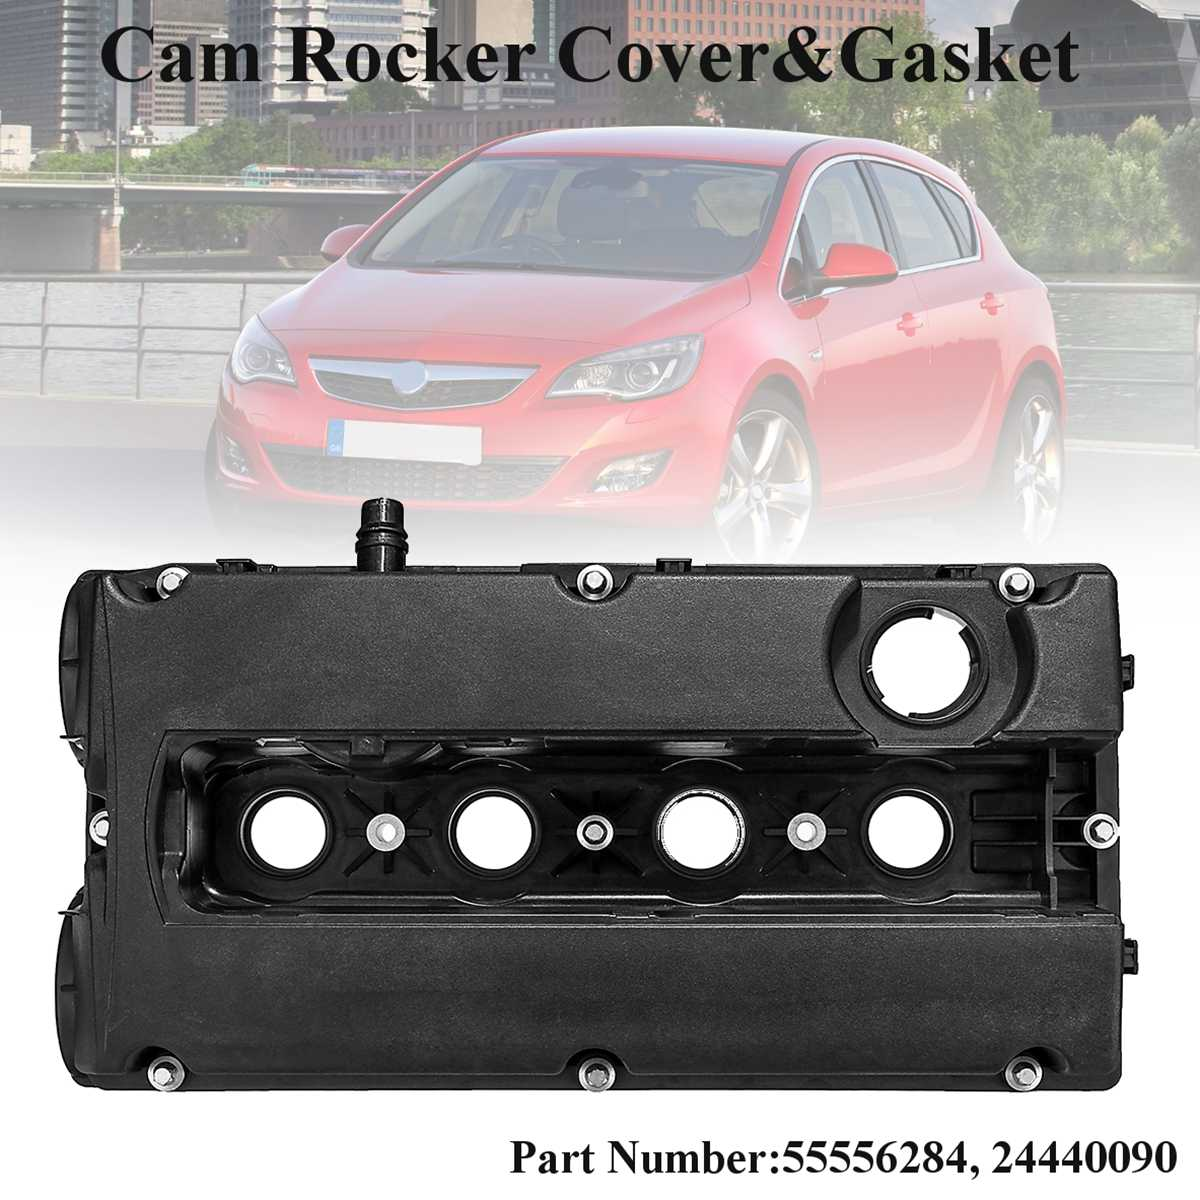 1Pcs Car Cam Rocker Cover & Gasket For Vauxhall Zafira Astar Z16XEP 55556284 24440090 Replacement Parts1Pcs Car Cam Rocker Cover & Gasket For Vauxhall Zafira Astar Z16XEP 55556284 24440090 Replacement Parts